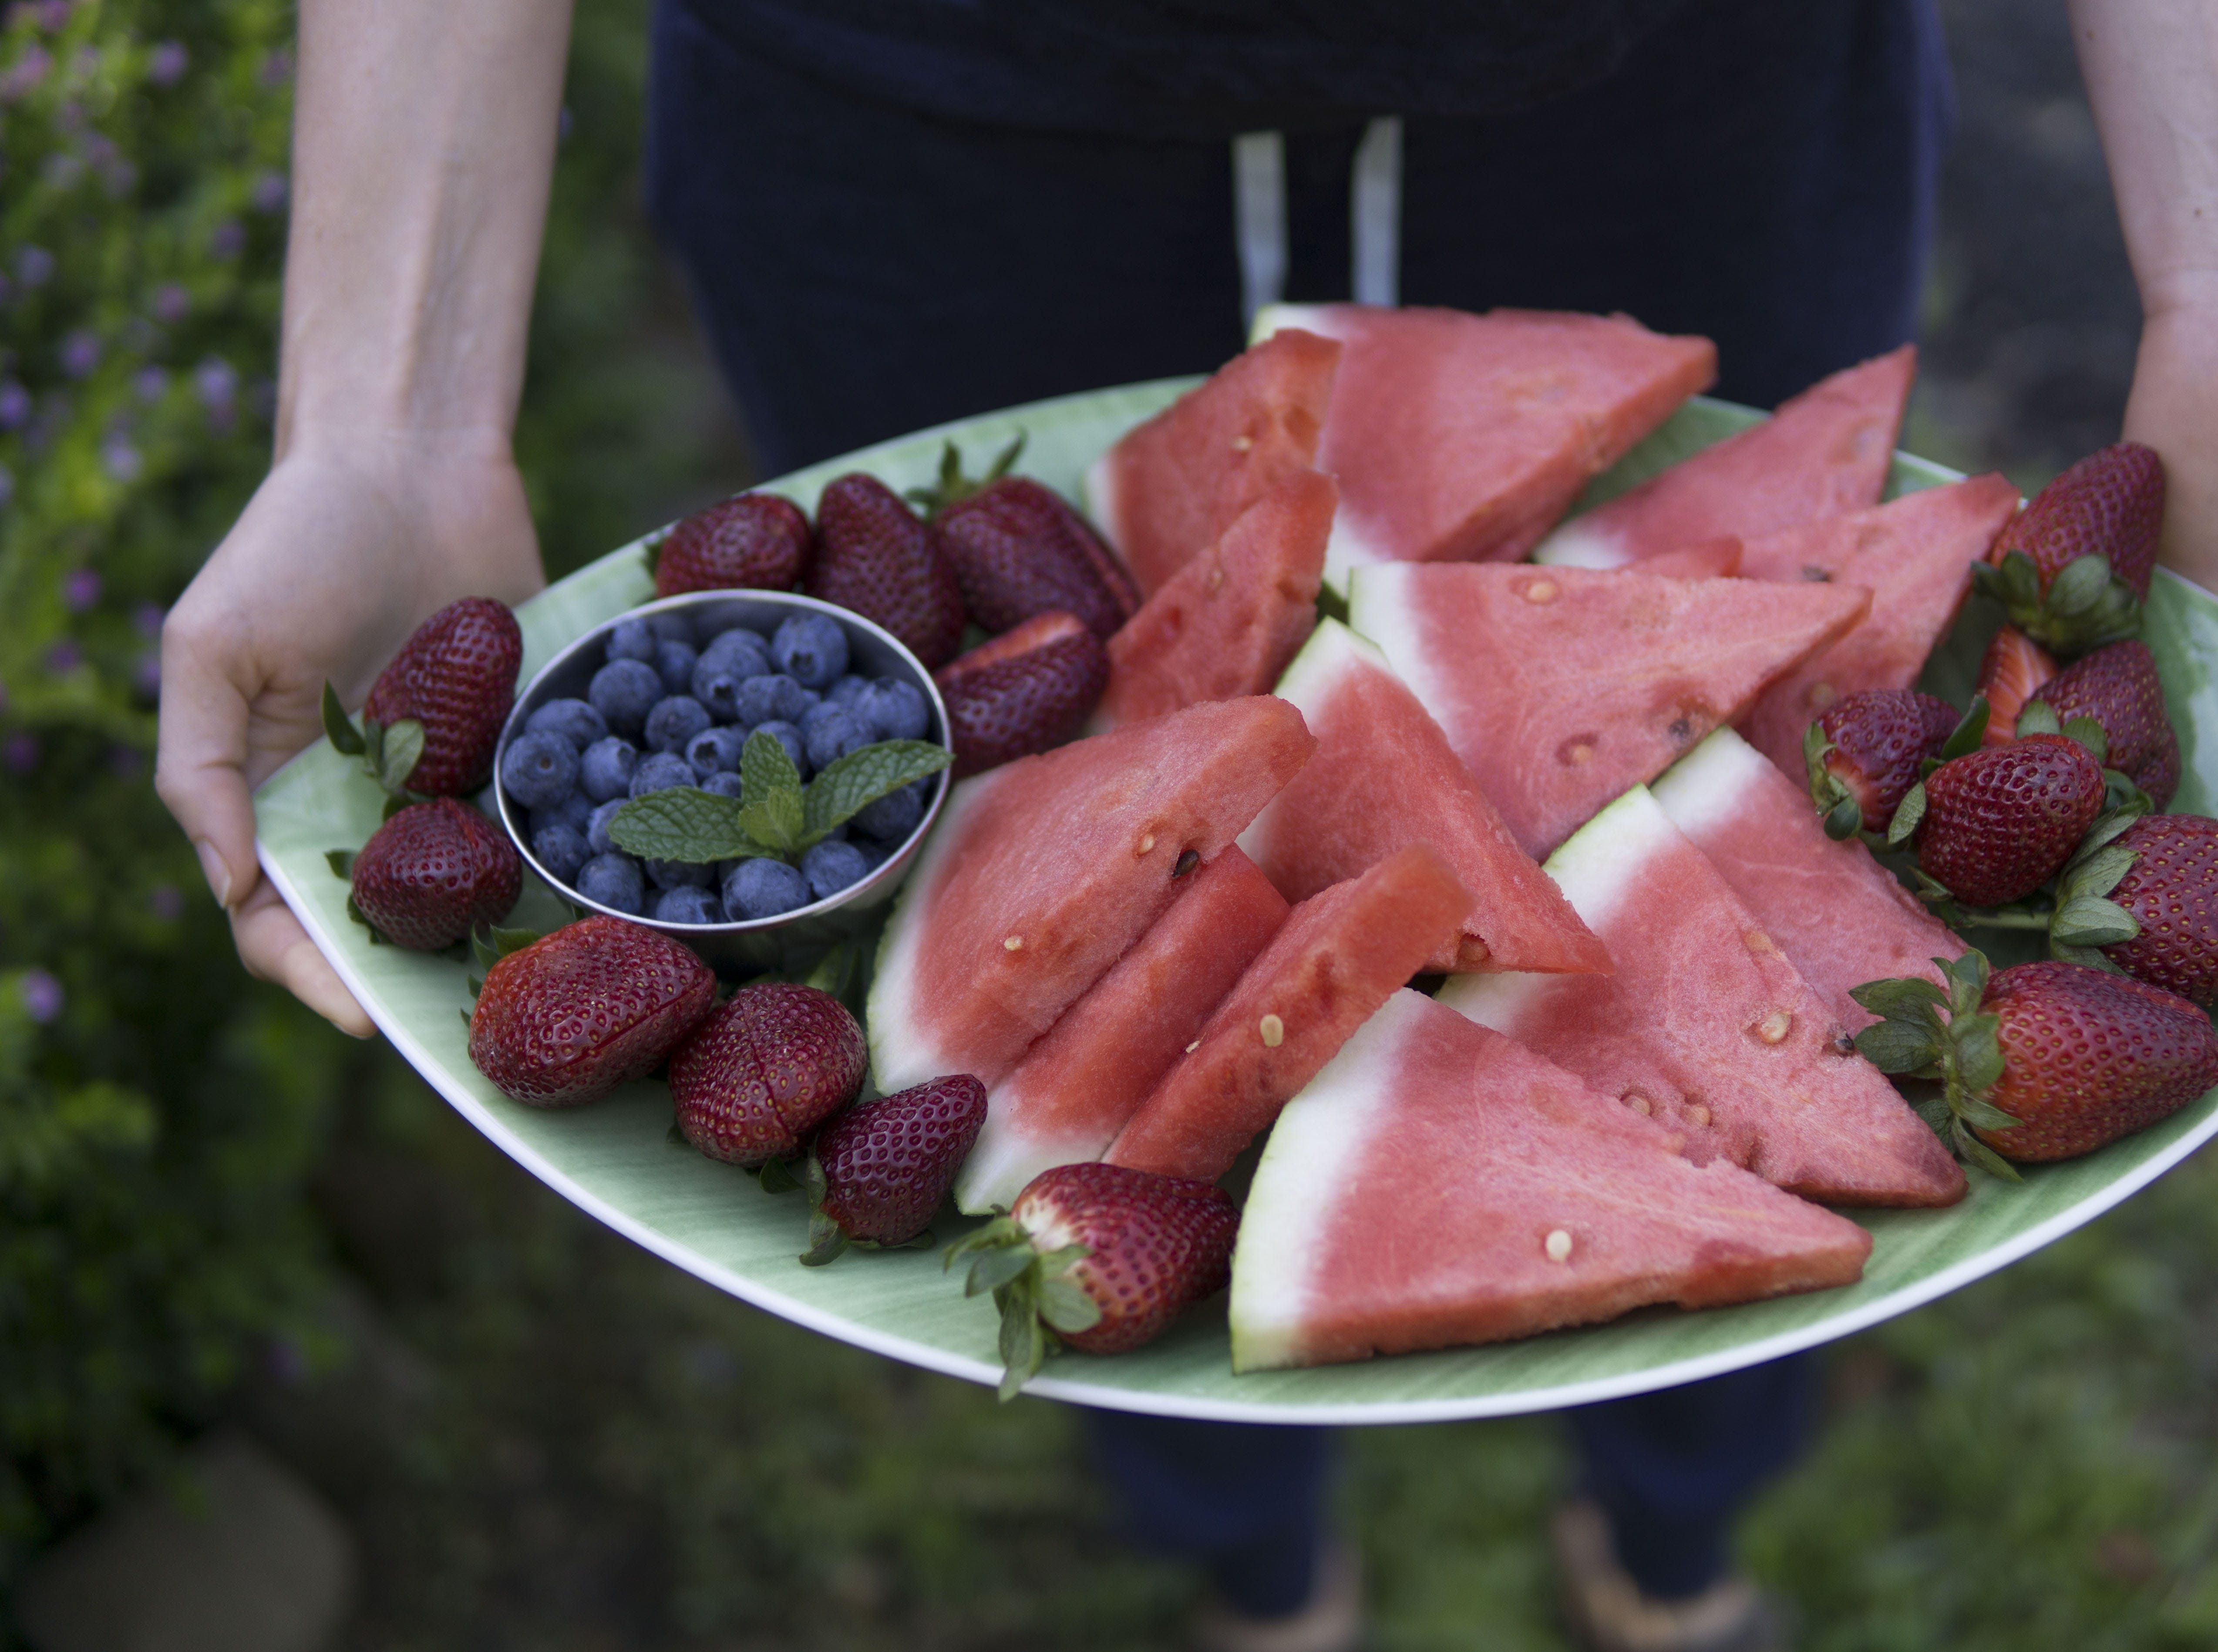 Person Holding Oval Green Plate Full Of Sliced Watermelons, Strawberries, And Blueberries